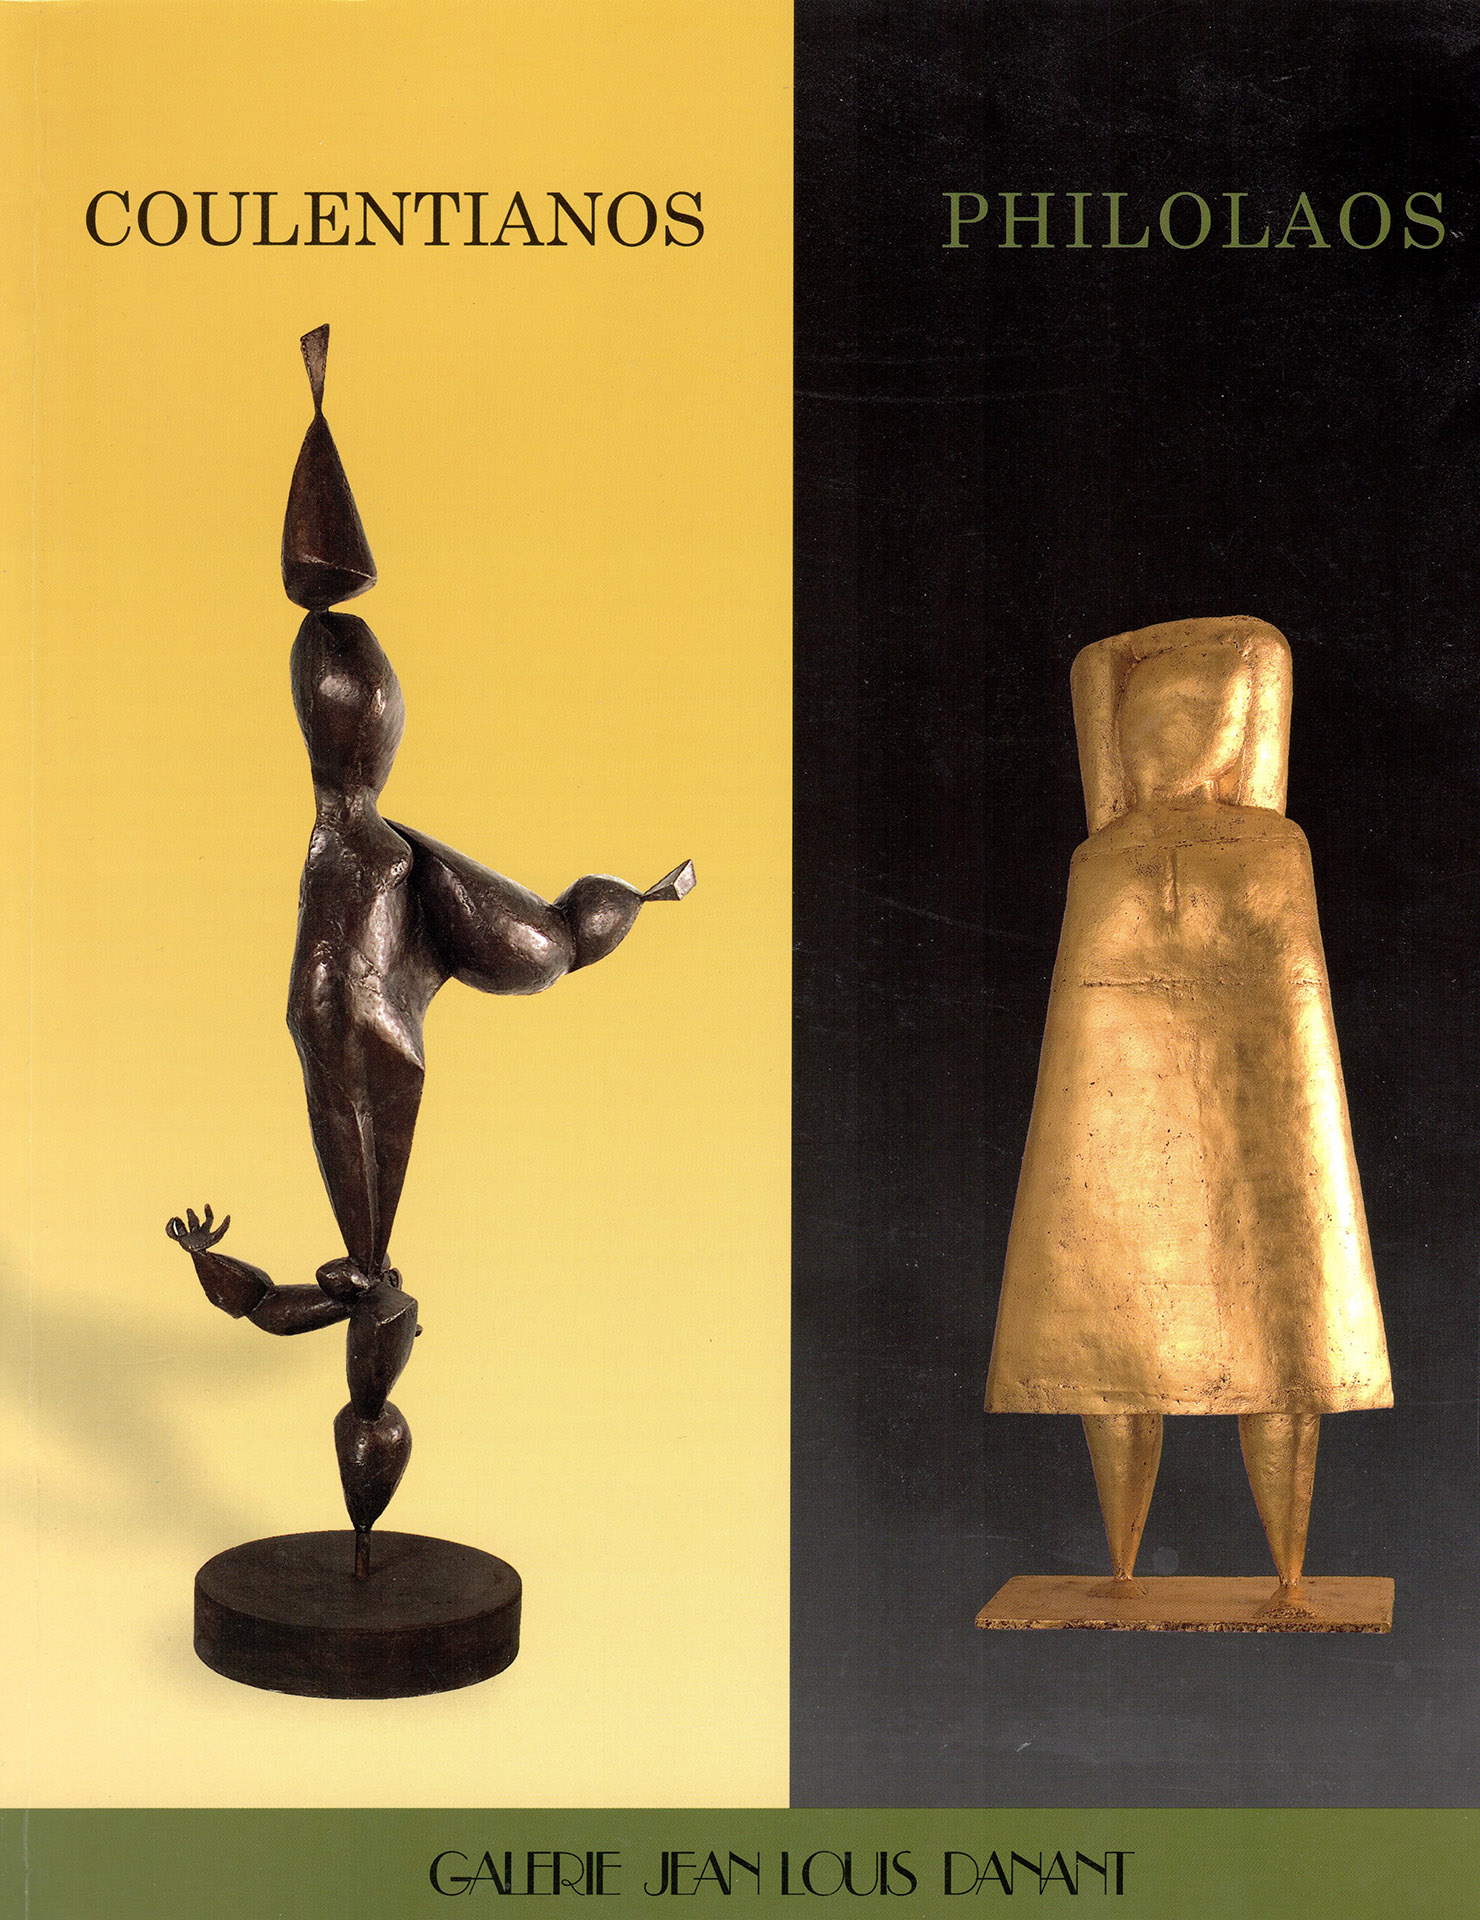 1. COULENTIANOS PHILOLAOS - DENYS ZACHAROPOULOS - GALERIE JEAN LOUIS DANANT